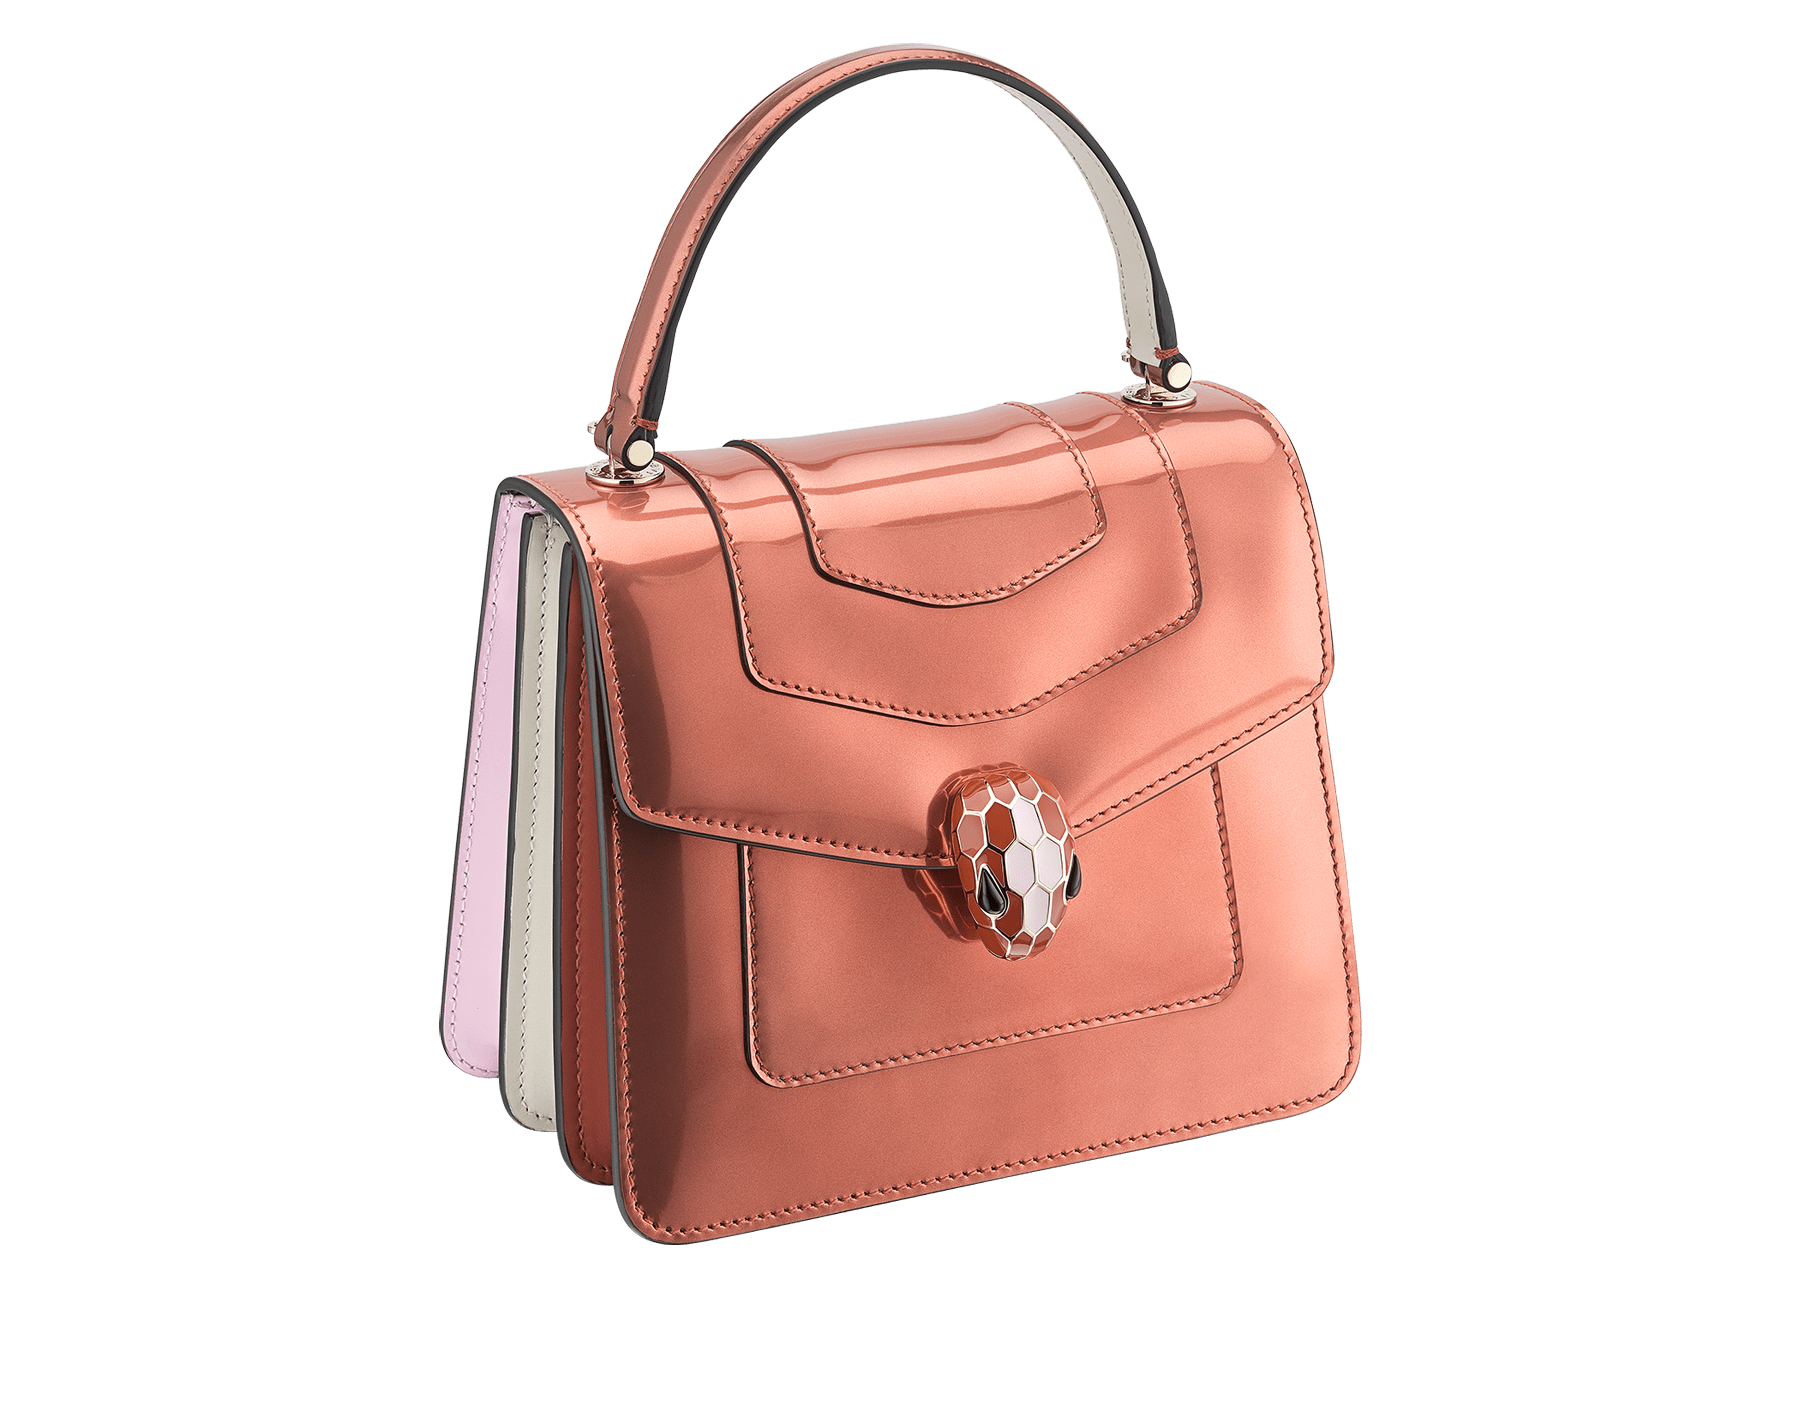 Serpenti Forever crossbody bag in imperial topaz brushed metallic calf leather with Roman garnet, rosa di francia and white agate calf leather sides. Iconic snakehead closure in light gold plated brass embellished with imperial topaz and white enamel and black onyx eyes. 752-NBMCL image 2